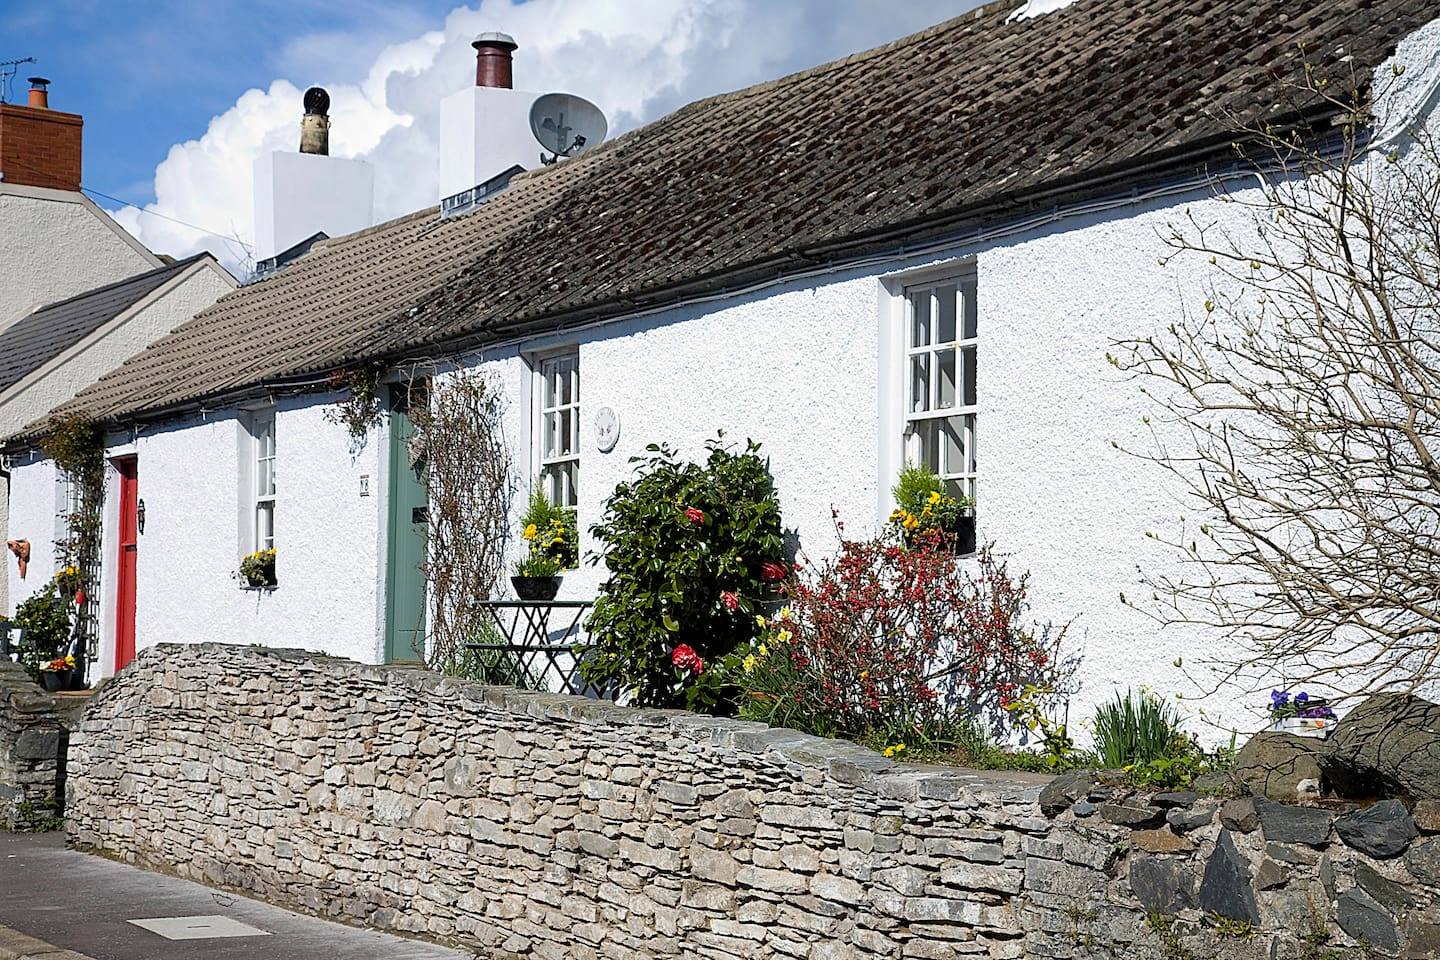 Lilac Tree Cottage is next door to Rose Cottage - which is also listed on Airbnb for holiday rental